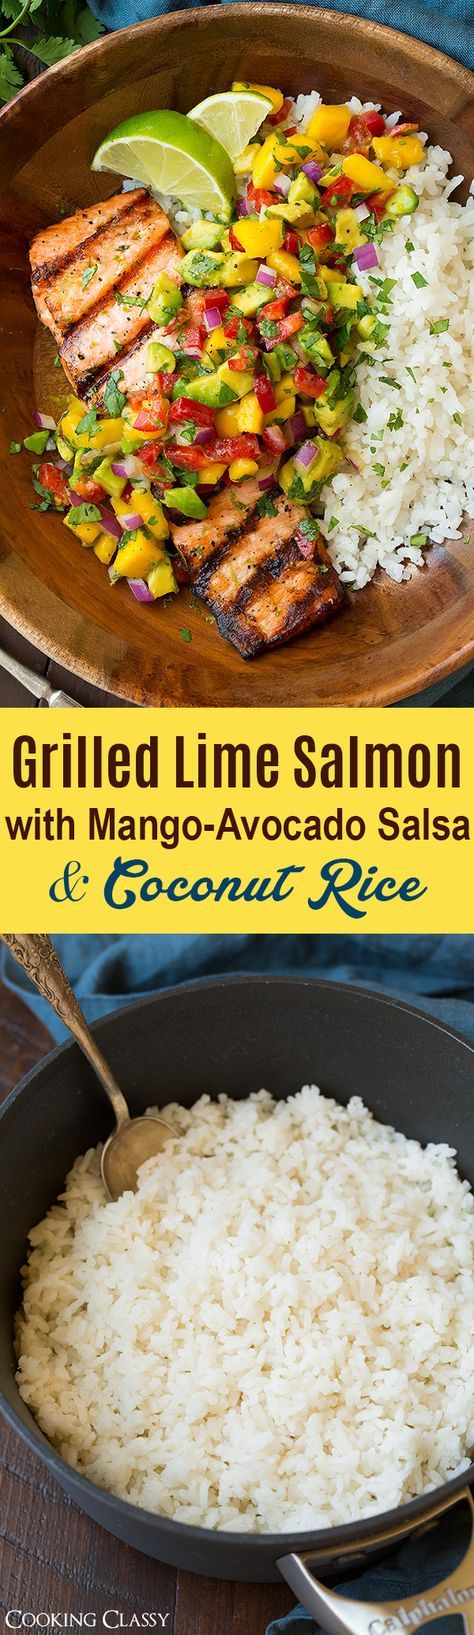 Grilled Lime Salmon with Mango-Avocado Salsa and Coconut Rice - this is the perfect summer meal! Loved everything about this! (Fish Recipes With Sauce)